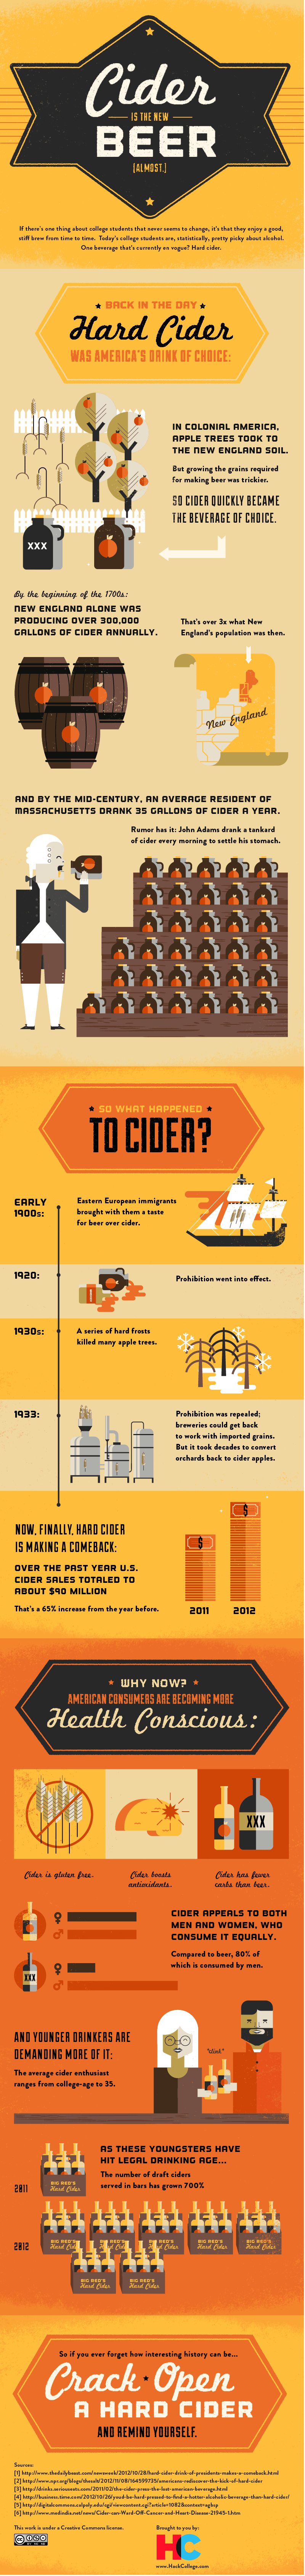 cider-infographic